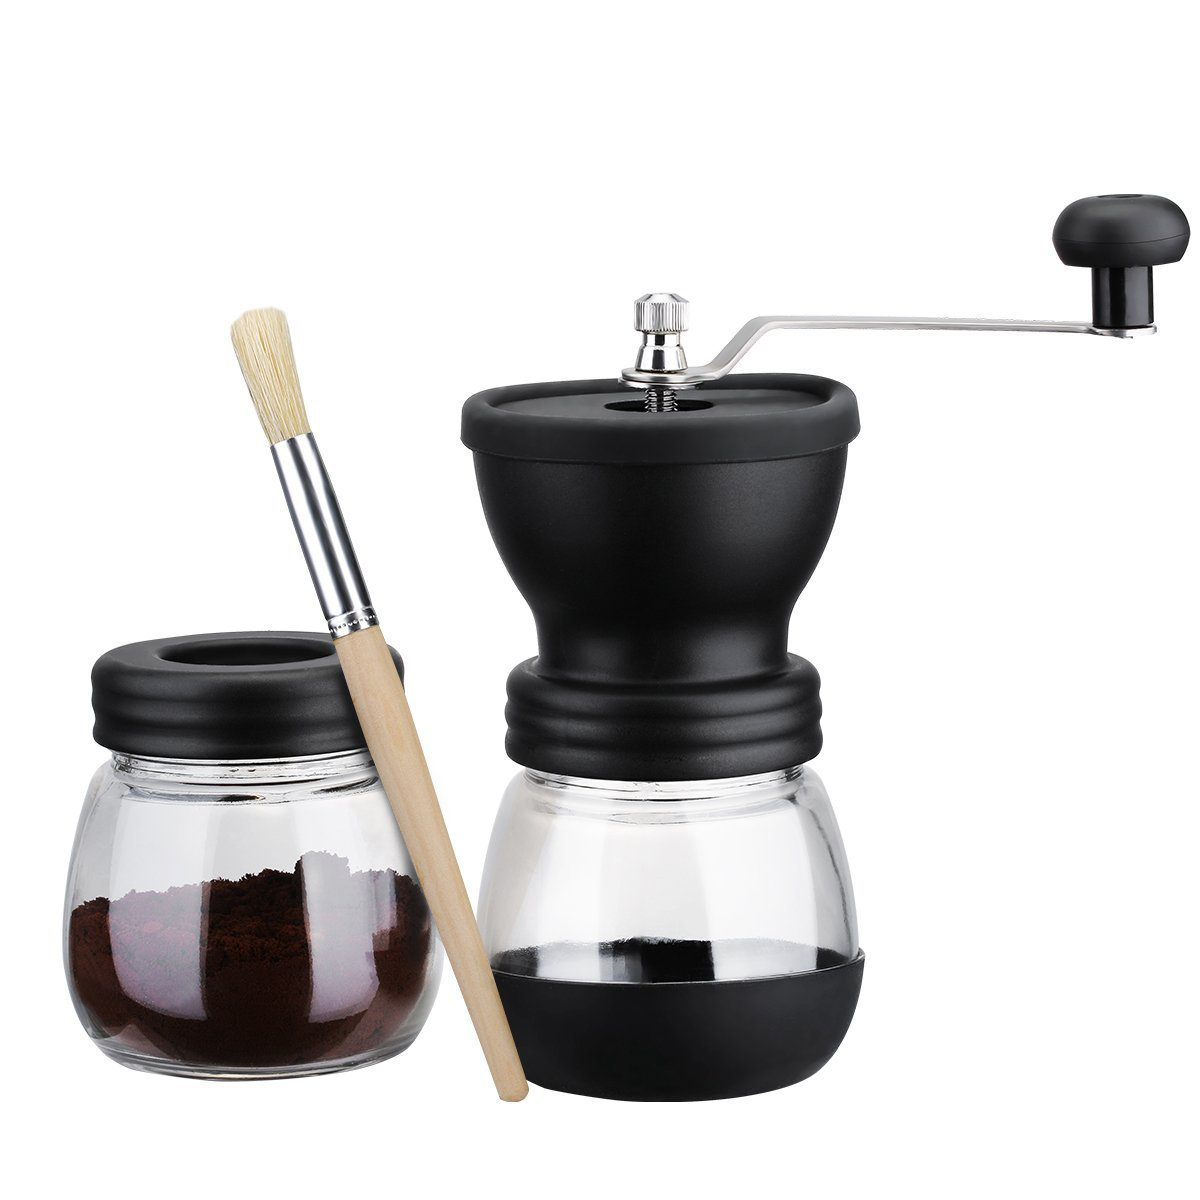 HOME Manual Coffee Grinder with Storage Jar  Soft brush   Conical Ceramic Burr Quiet and Portable|Coffee Makers| |  - title=